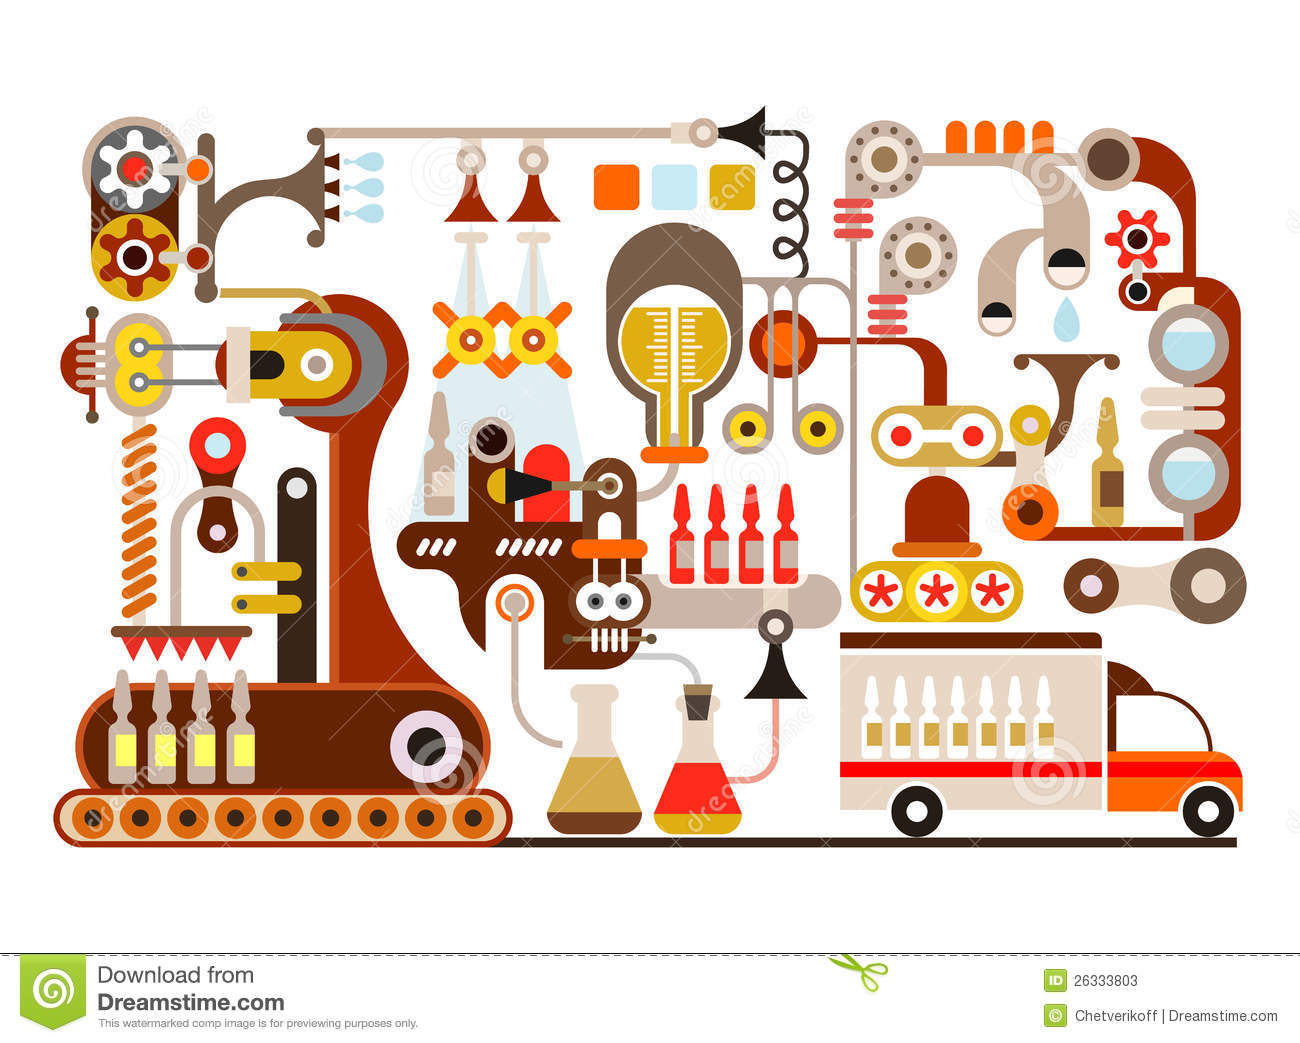 Machine clipart clockwork Manufacturing Equipment – Clipart Manufacturing